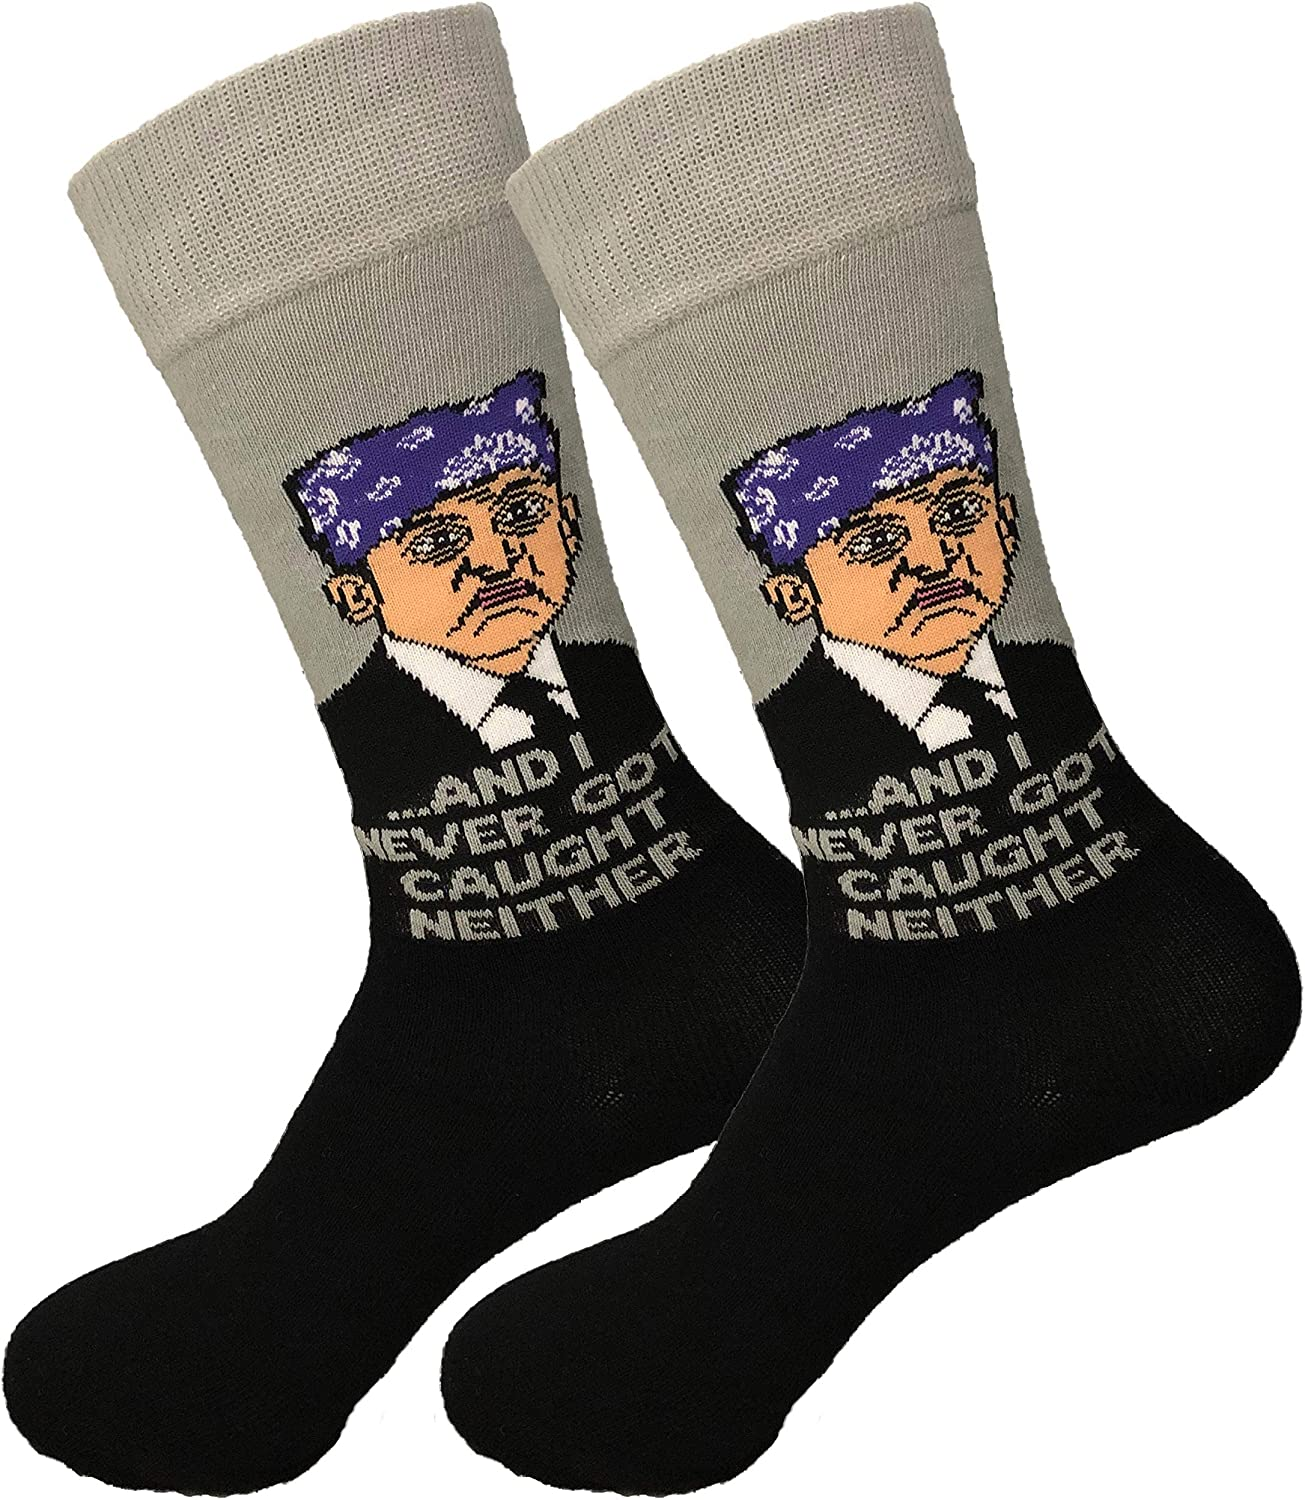 Balanced Co. Prison Mike Dress Socks Michael Scott Funny Socks Crazy Socks Casual Cotton Crew Socks